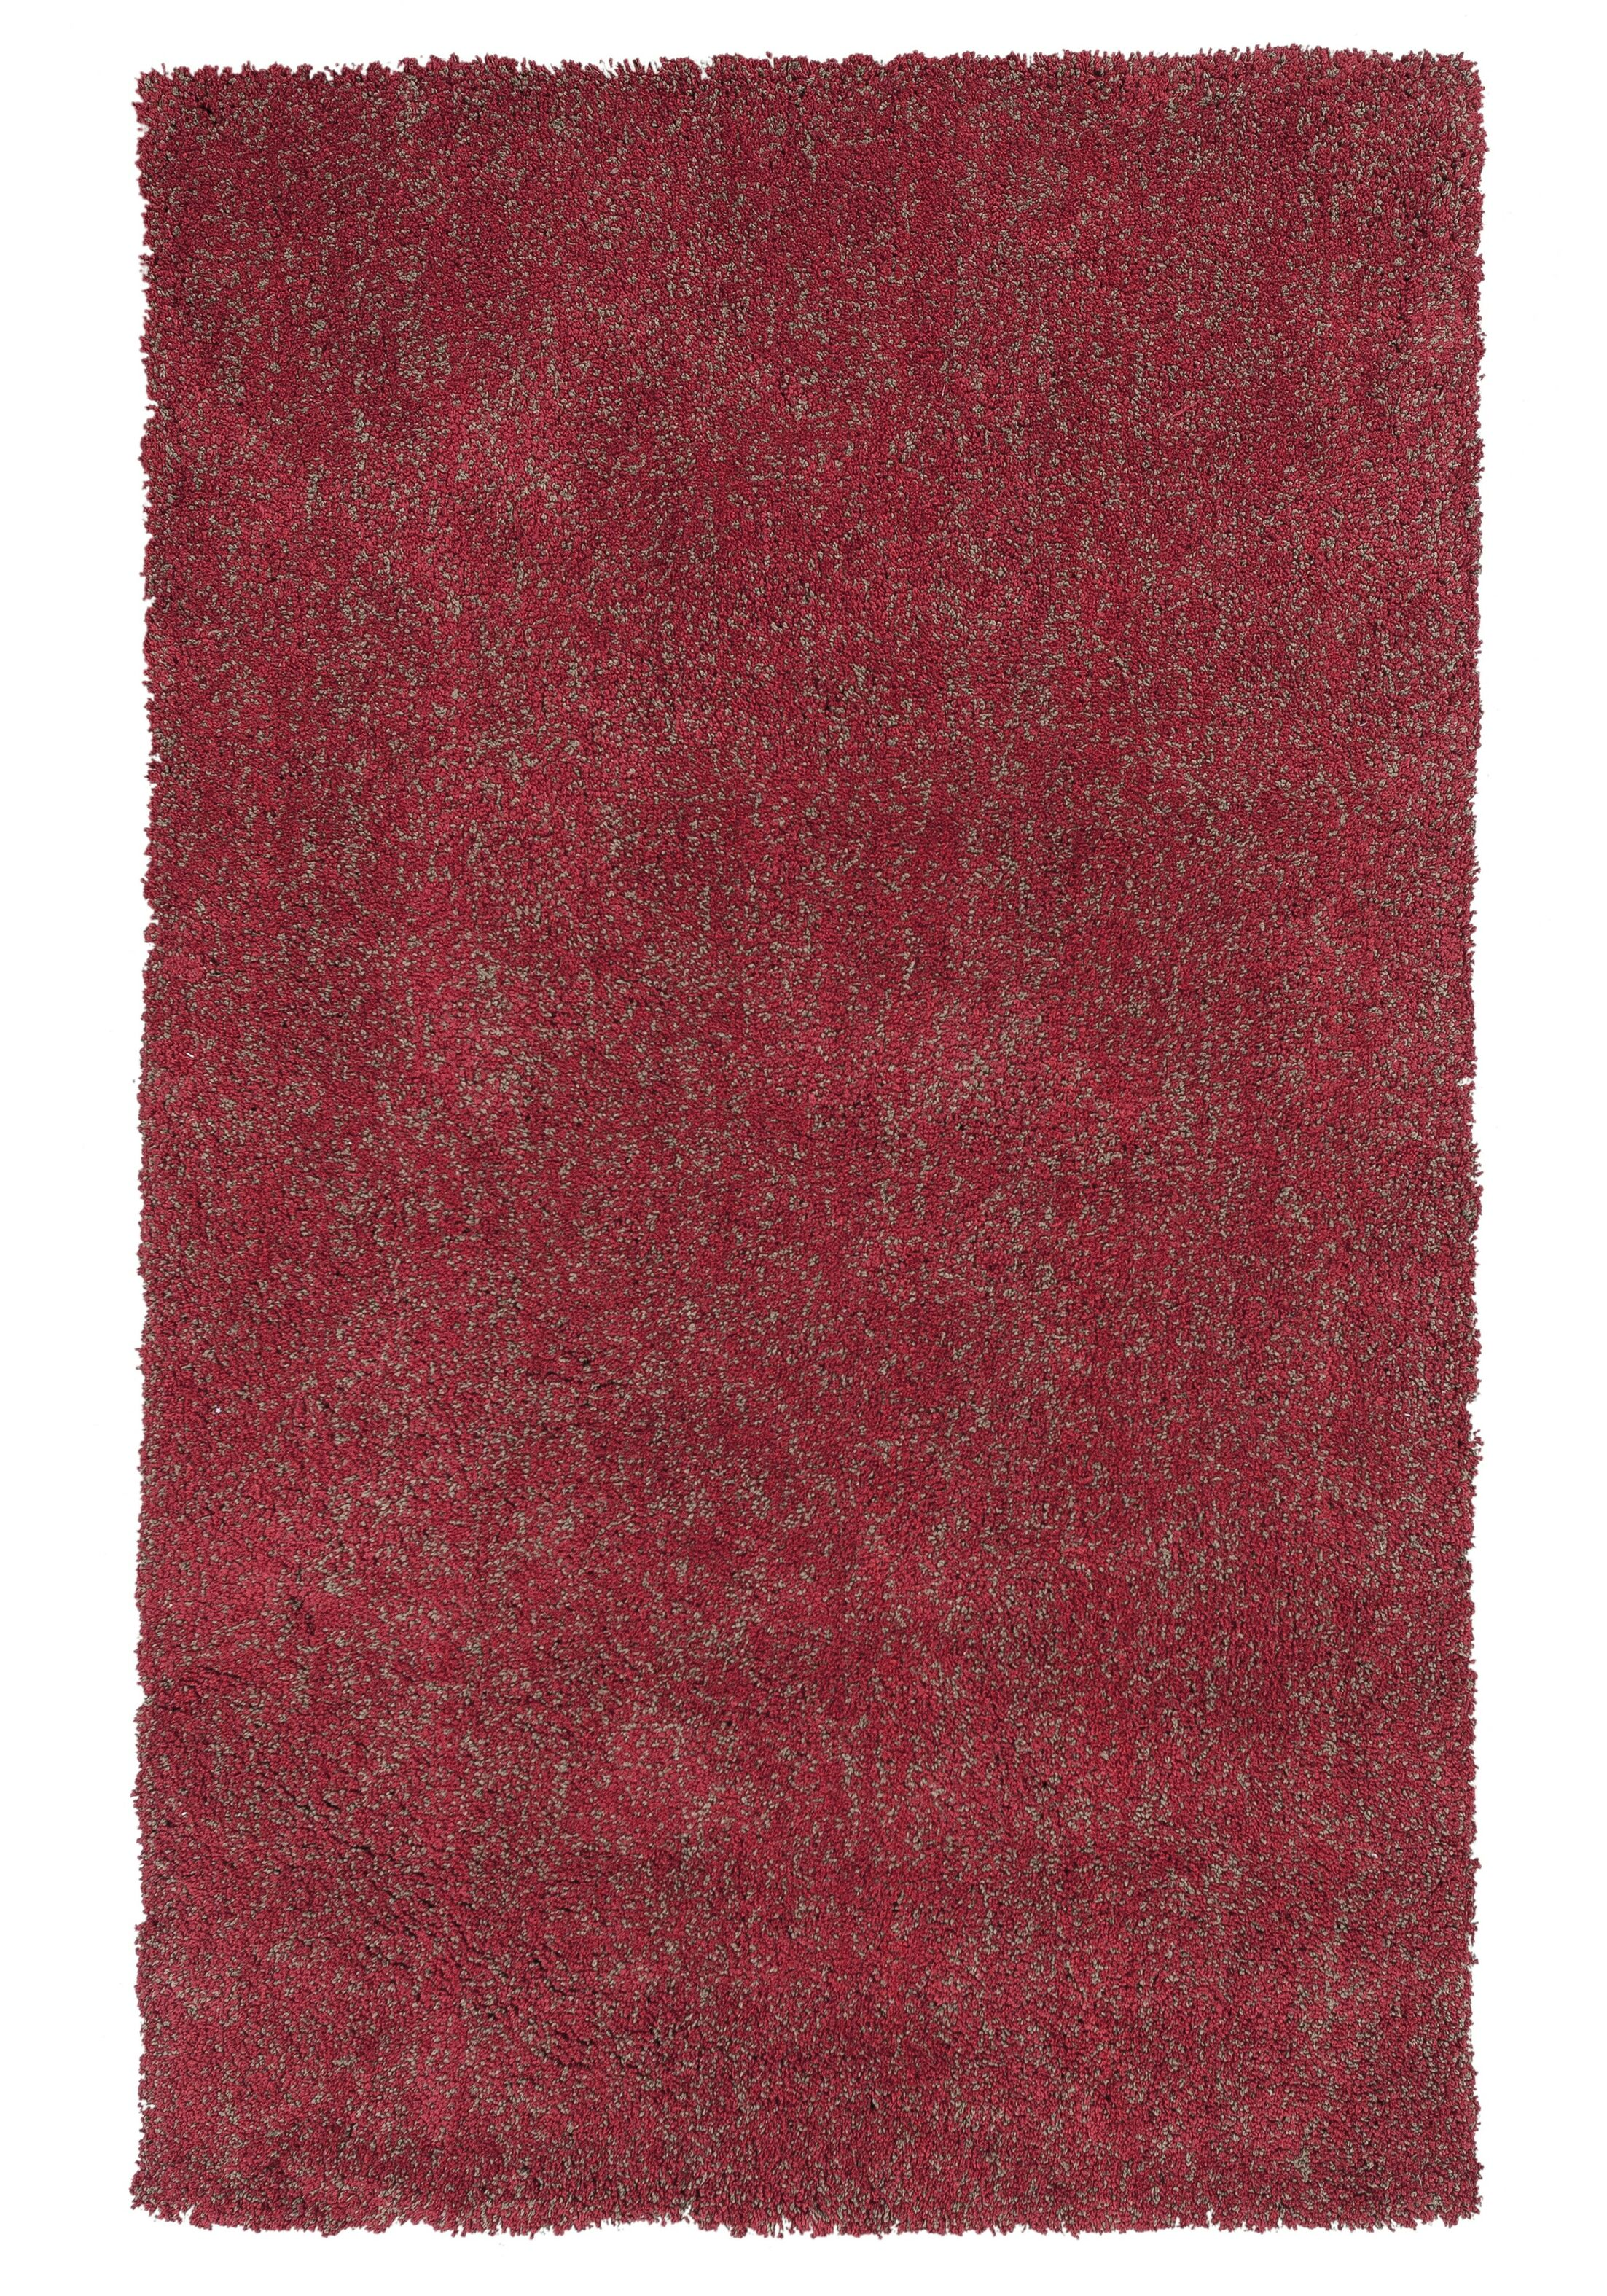 Bouvier Red Heather Area Rug Rug Size: Rectangle 9' x 13'